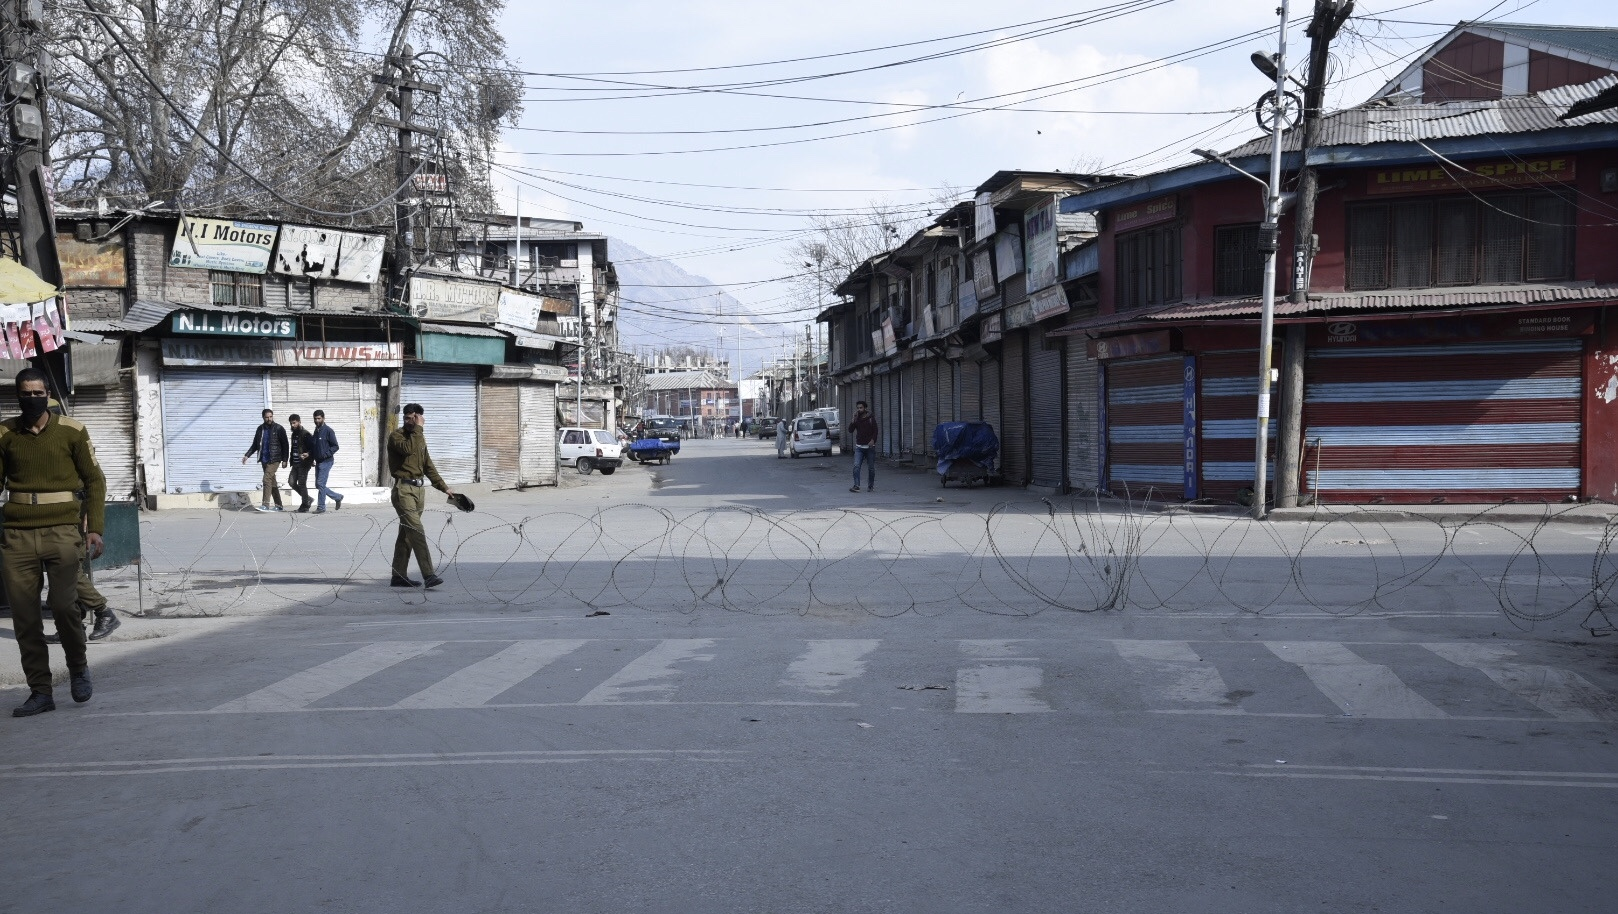 Paramilitary forces used barbed wire to curb the movement of locals